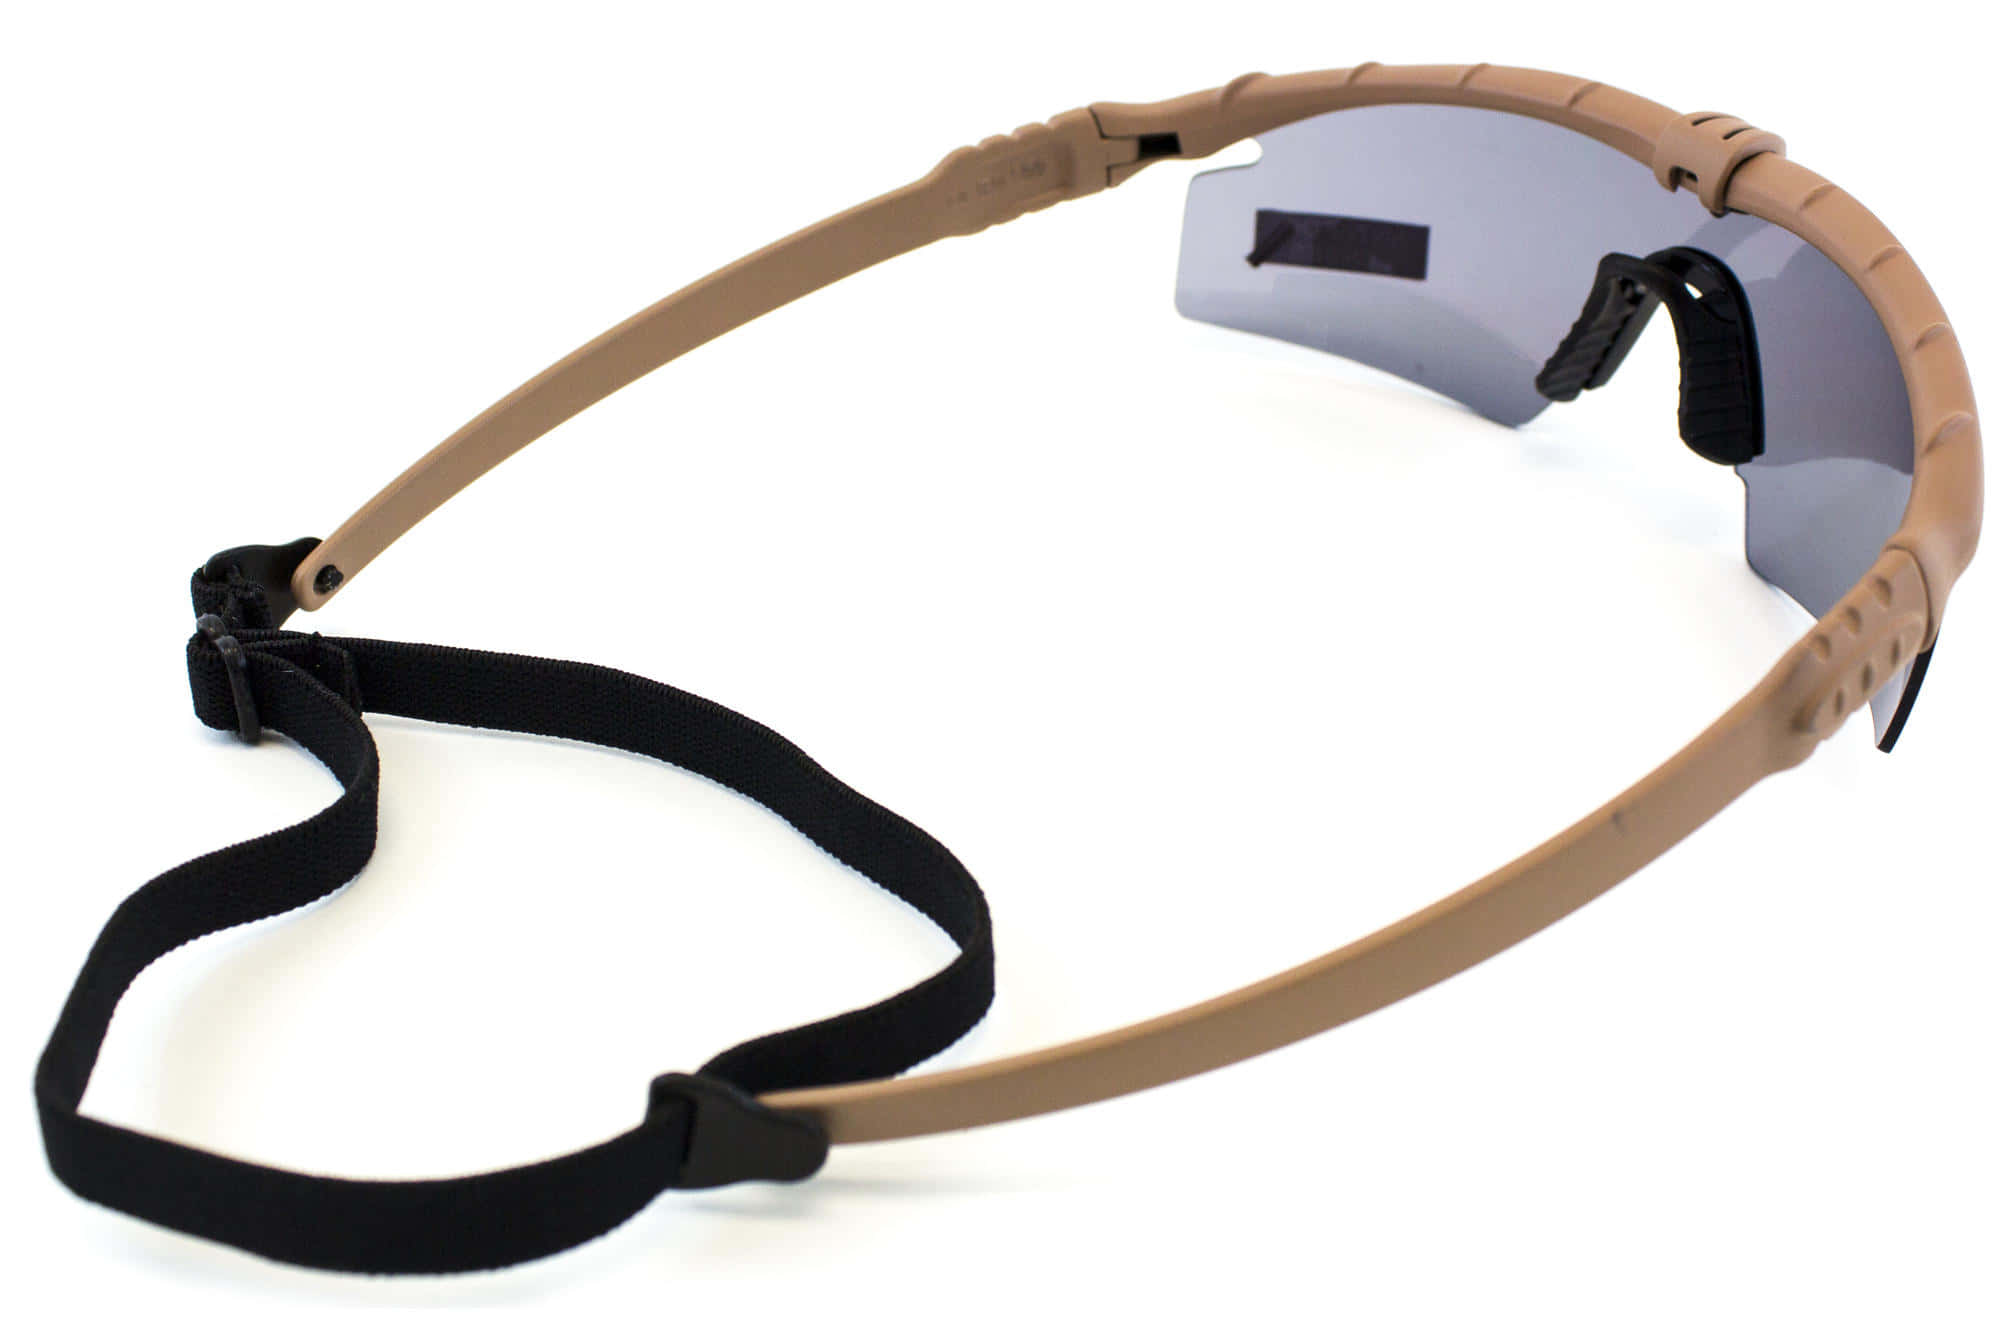 A69681-Lunettes NP Battle Pro Thermal Tan/Smoke - A69681